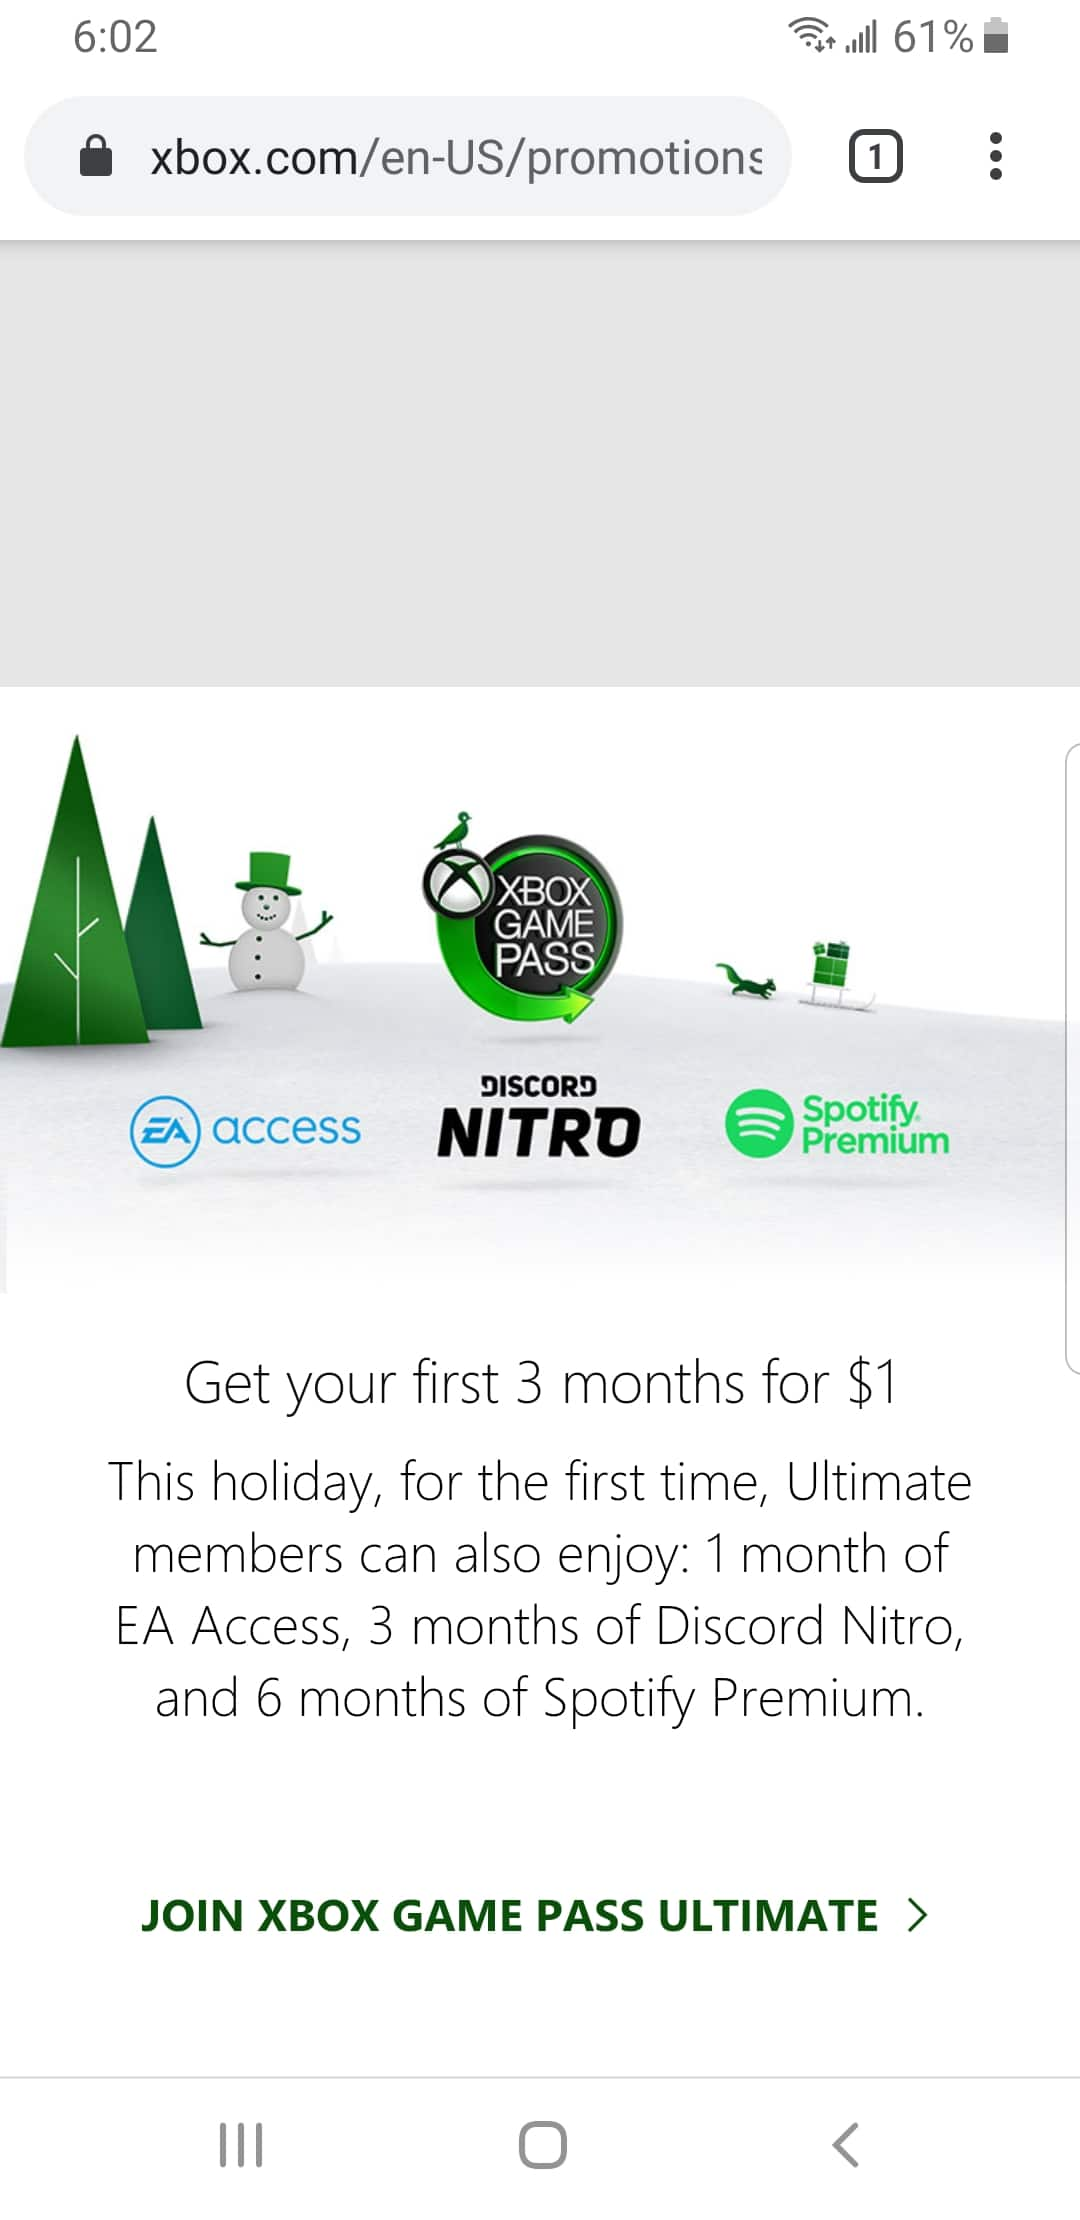 Xbox Ultimate Holiday Giveaway: 1 month EA Access, 3 months Discord Nitro, 6 months Spotify Premium